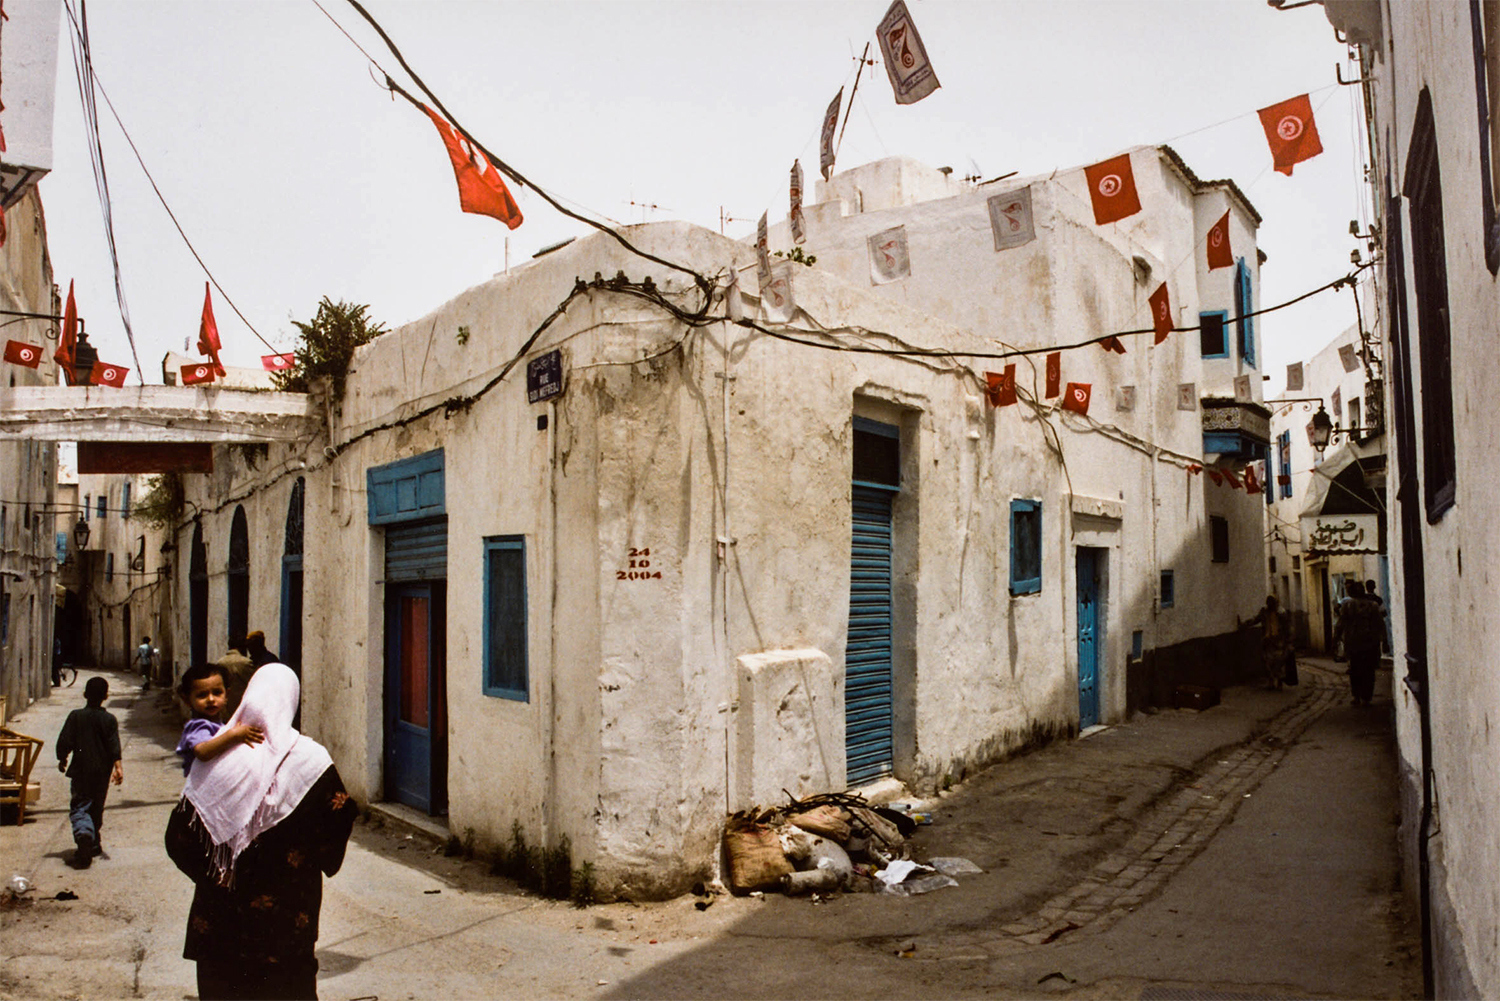 <p>A woman and her children on a backstreet of Tunis's Medina. <br /></p> <p>The date on the wall refers to the Tunisian general election from the previous year, which (unsurprisingly) saw the highly corrupt president Zine El Abidine Ben Ali 're-elected' for a fourth time – with a mere 94.9 percent of the vote. A few years later, Ben Ali's flagrant misrule sparked the Arab Spring that permanently removed him from power.</p>